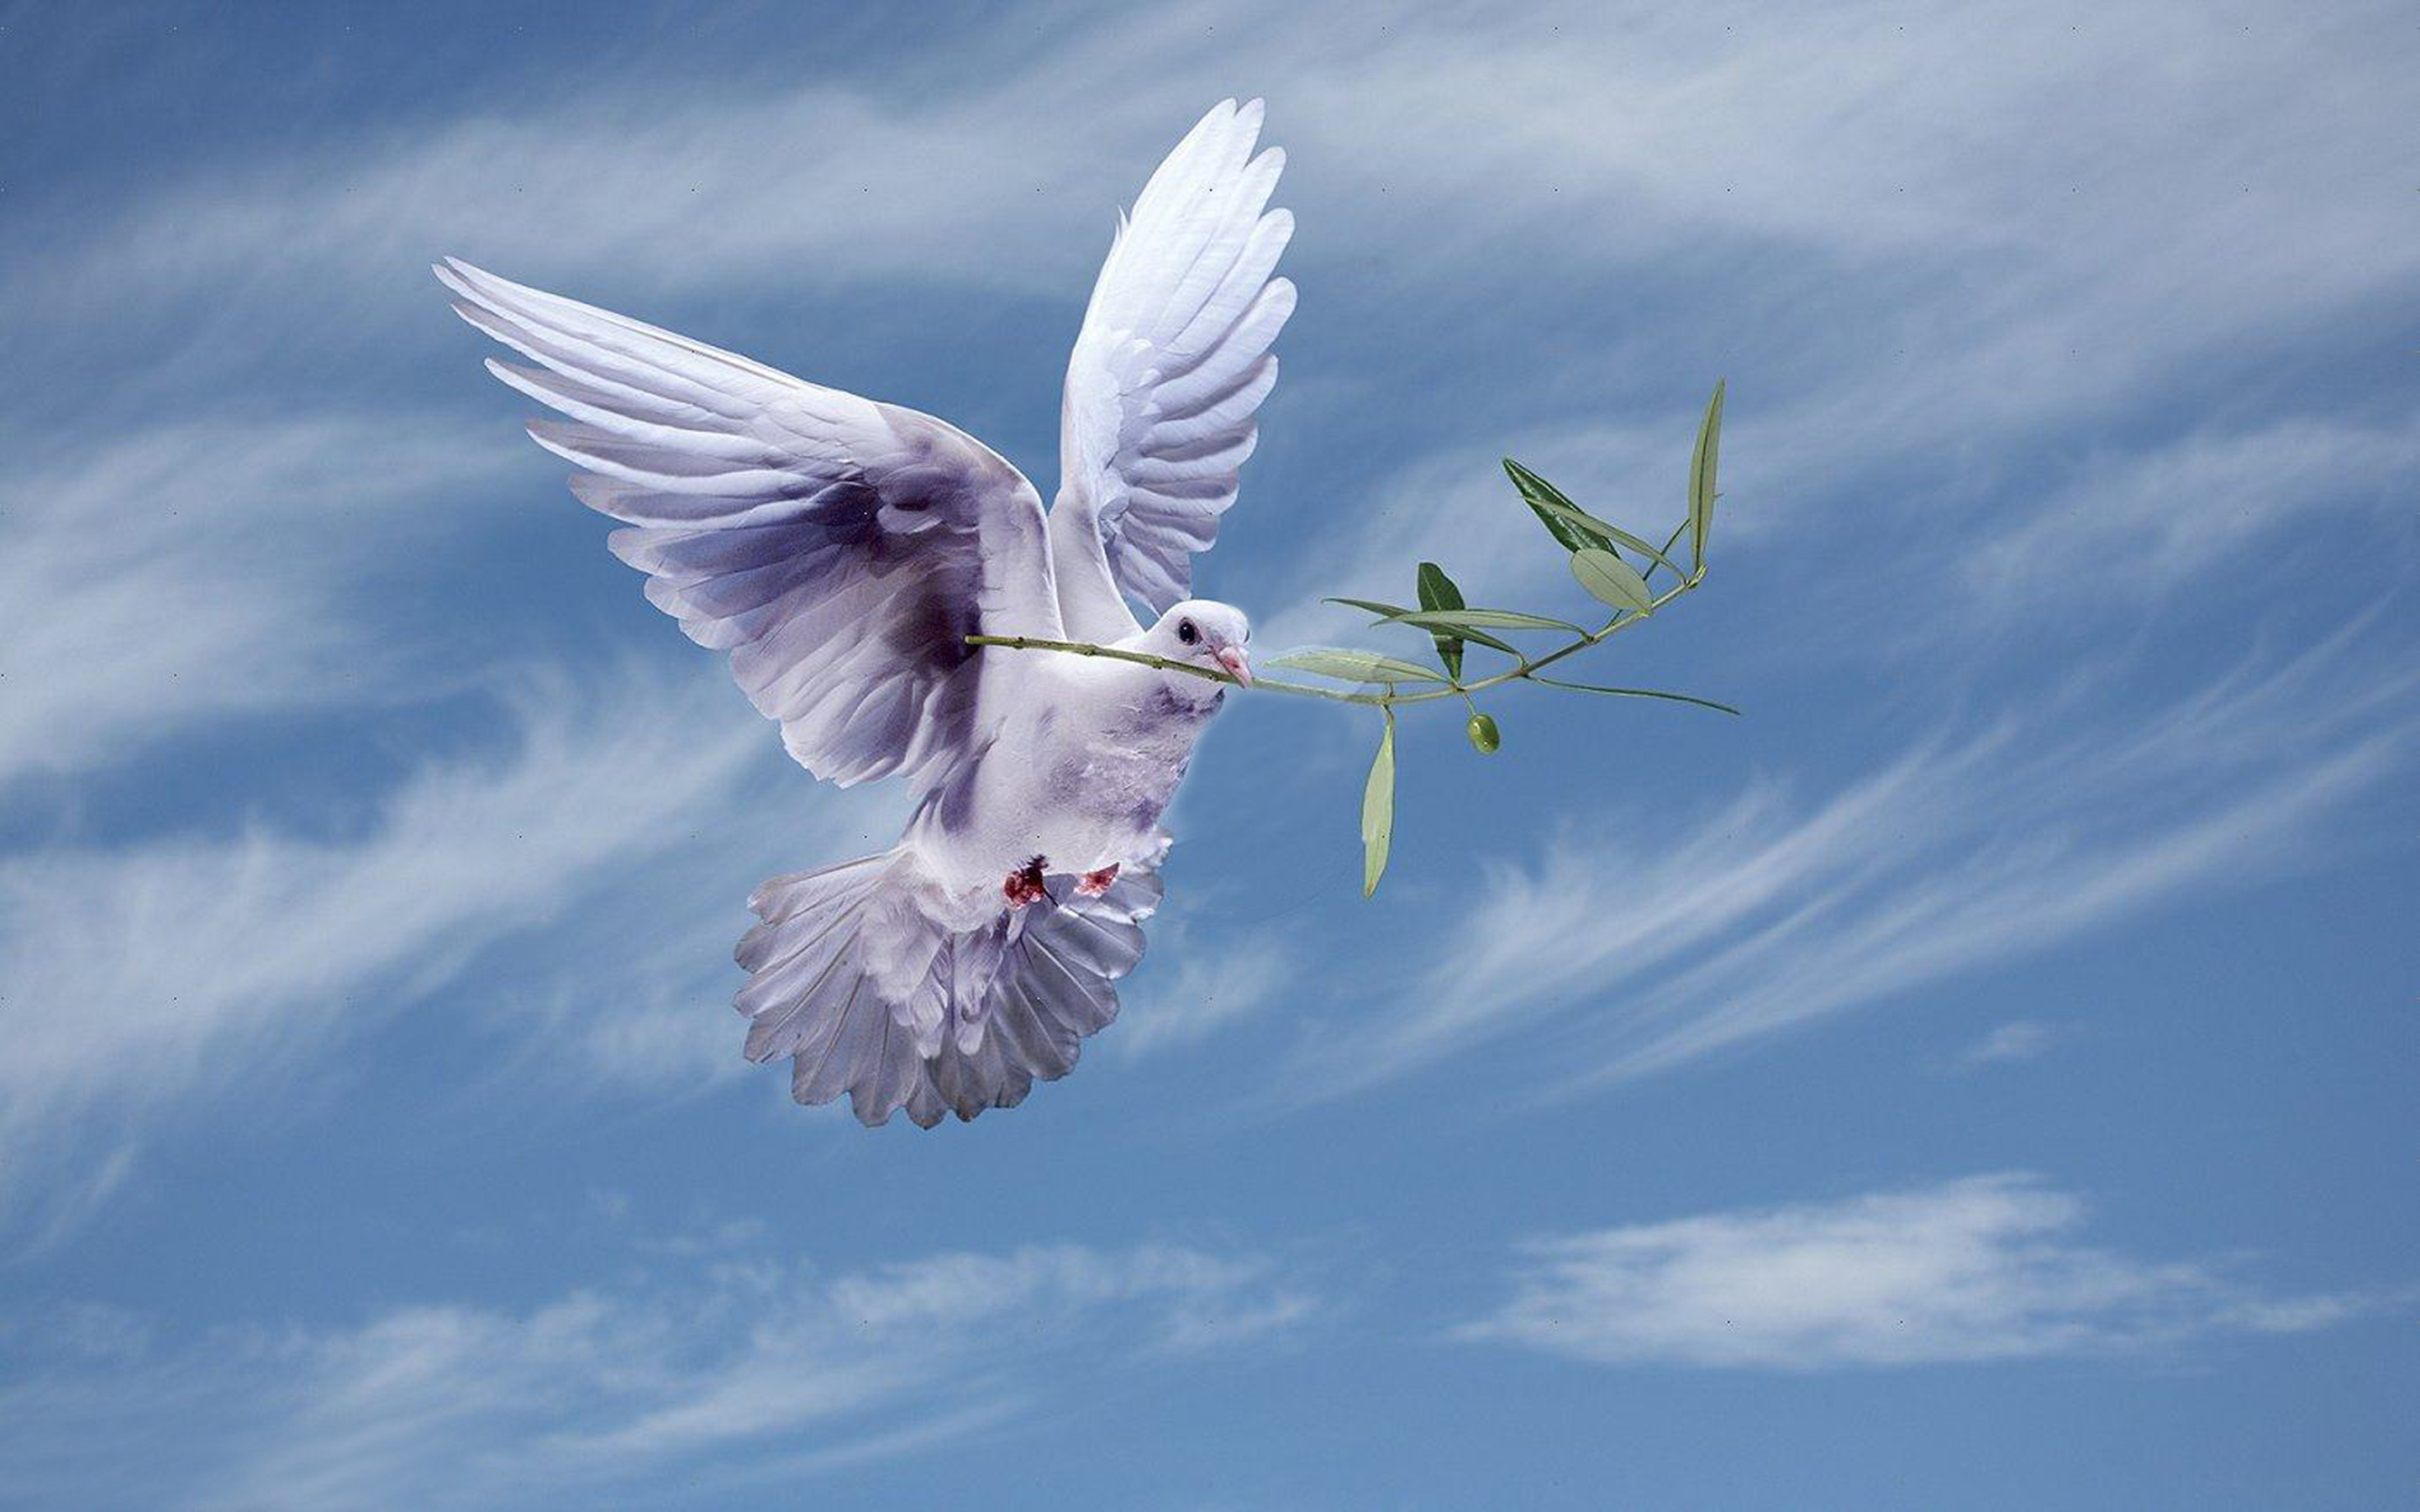 Animated Fish Wallpaper Hd White Dove With An Olive Branch Symbol Of Peace Hd